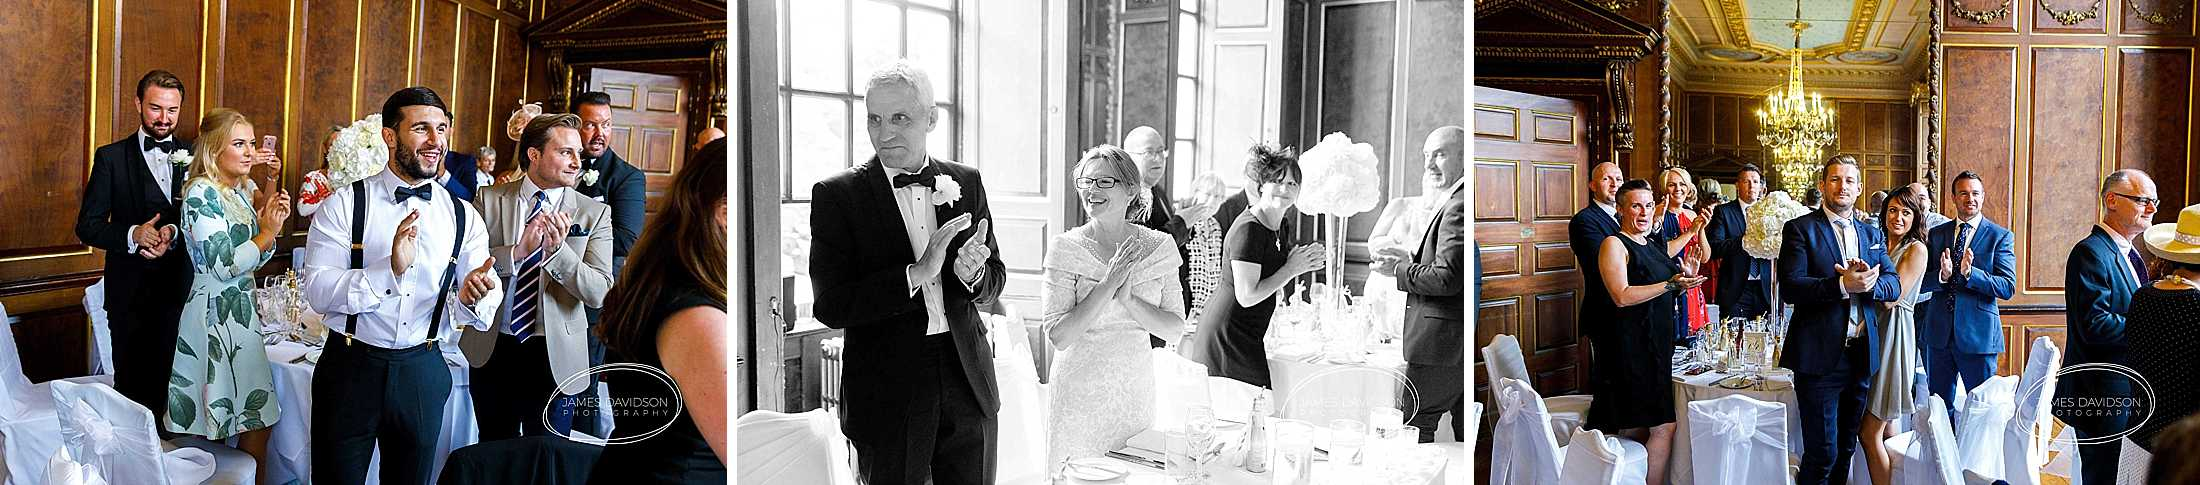 gosfield-hall-wedding-photography-104